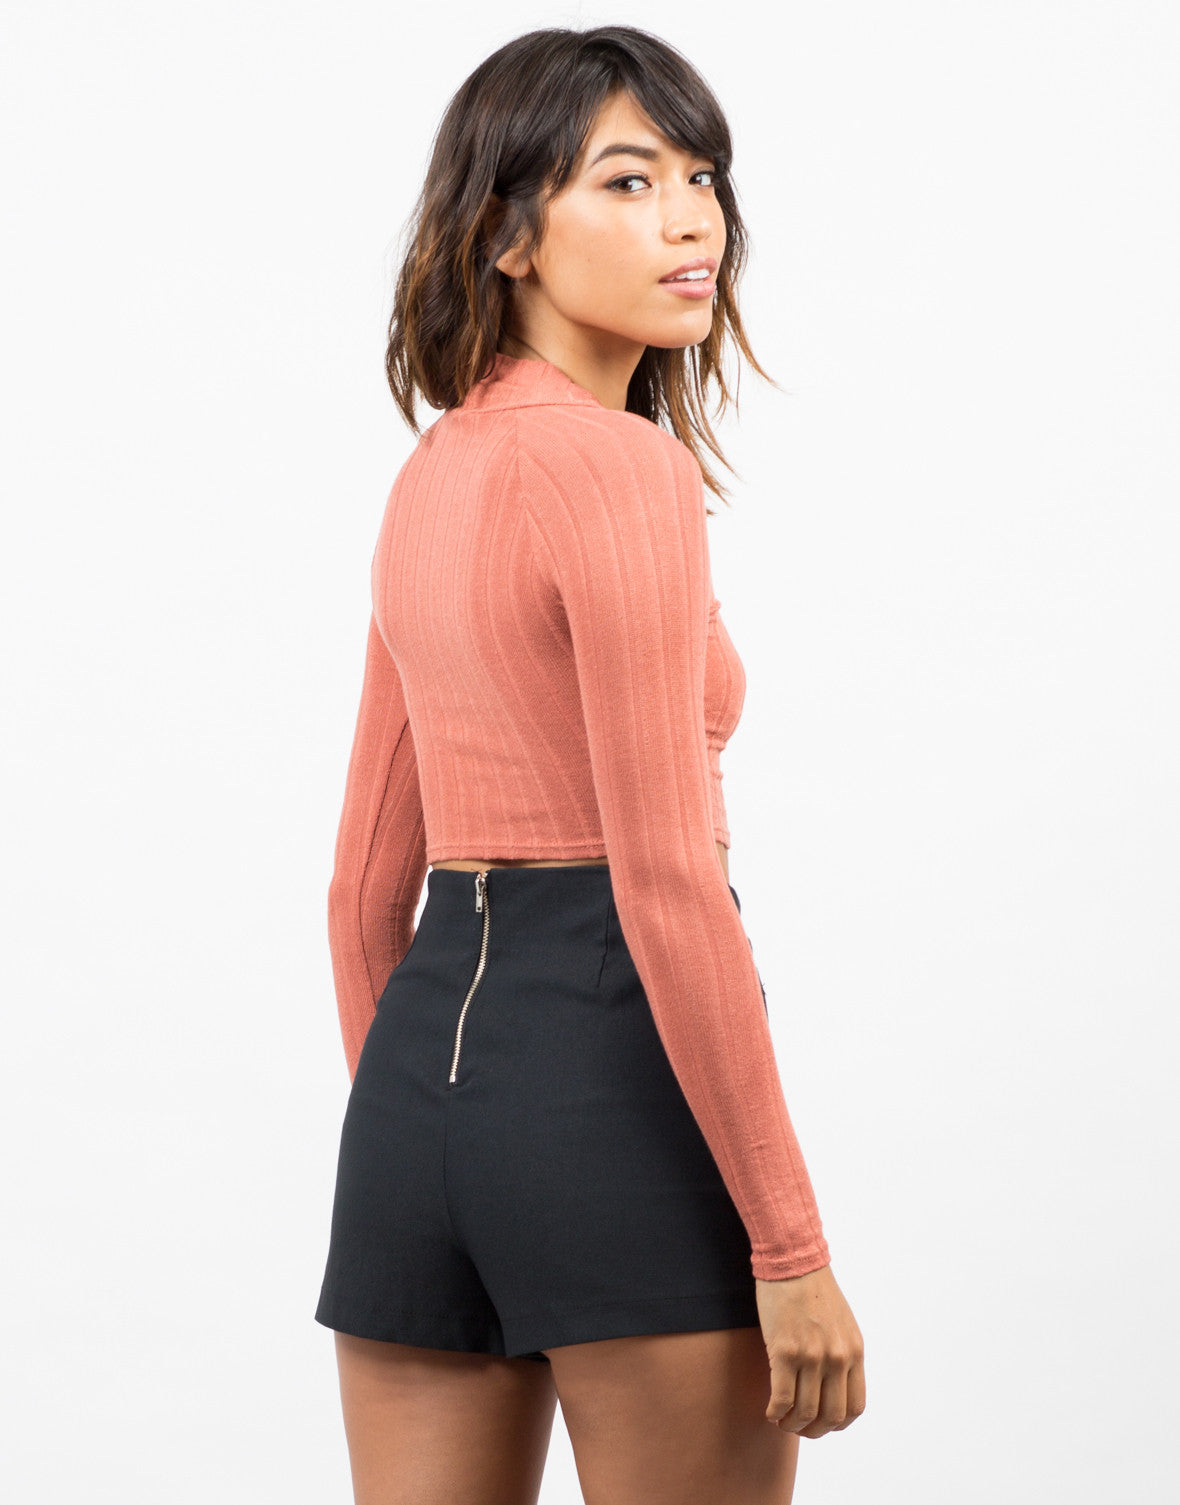 Back View of High Neck Ribbed Crop Top